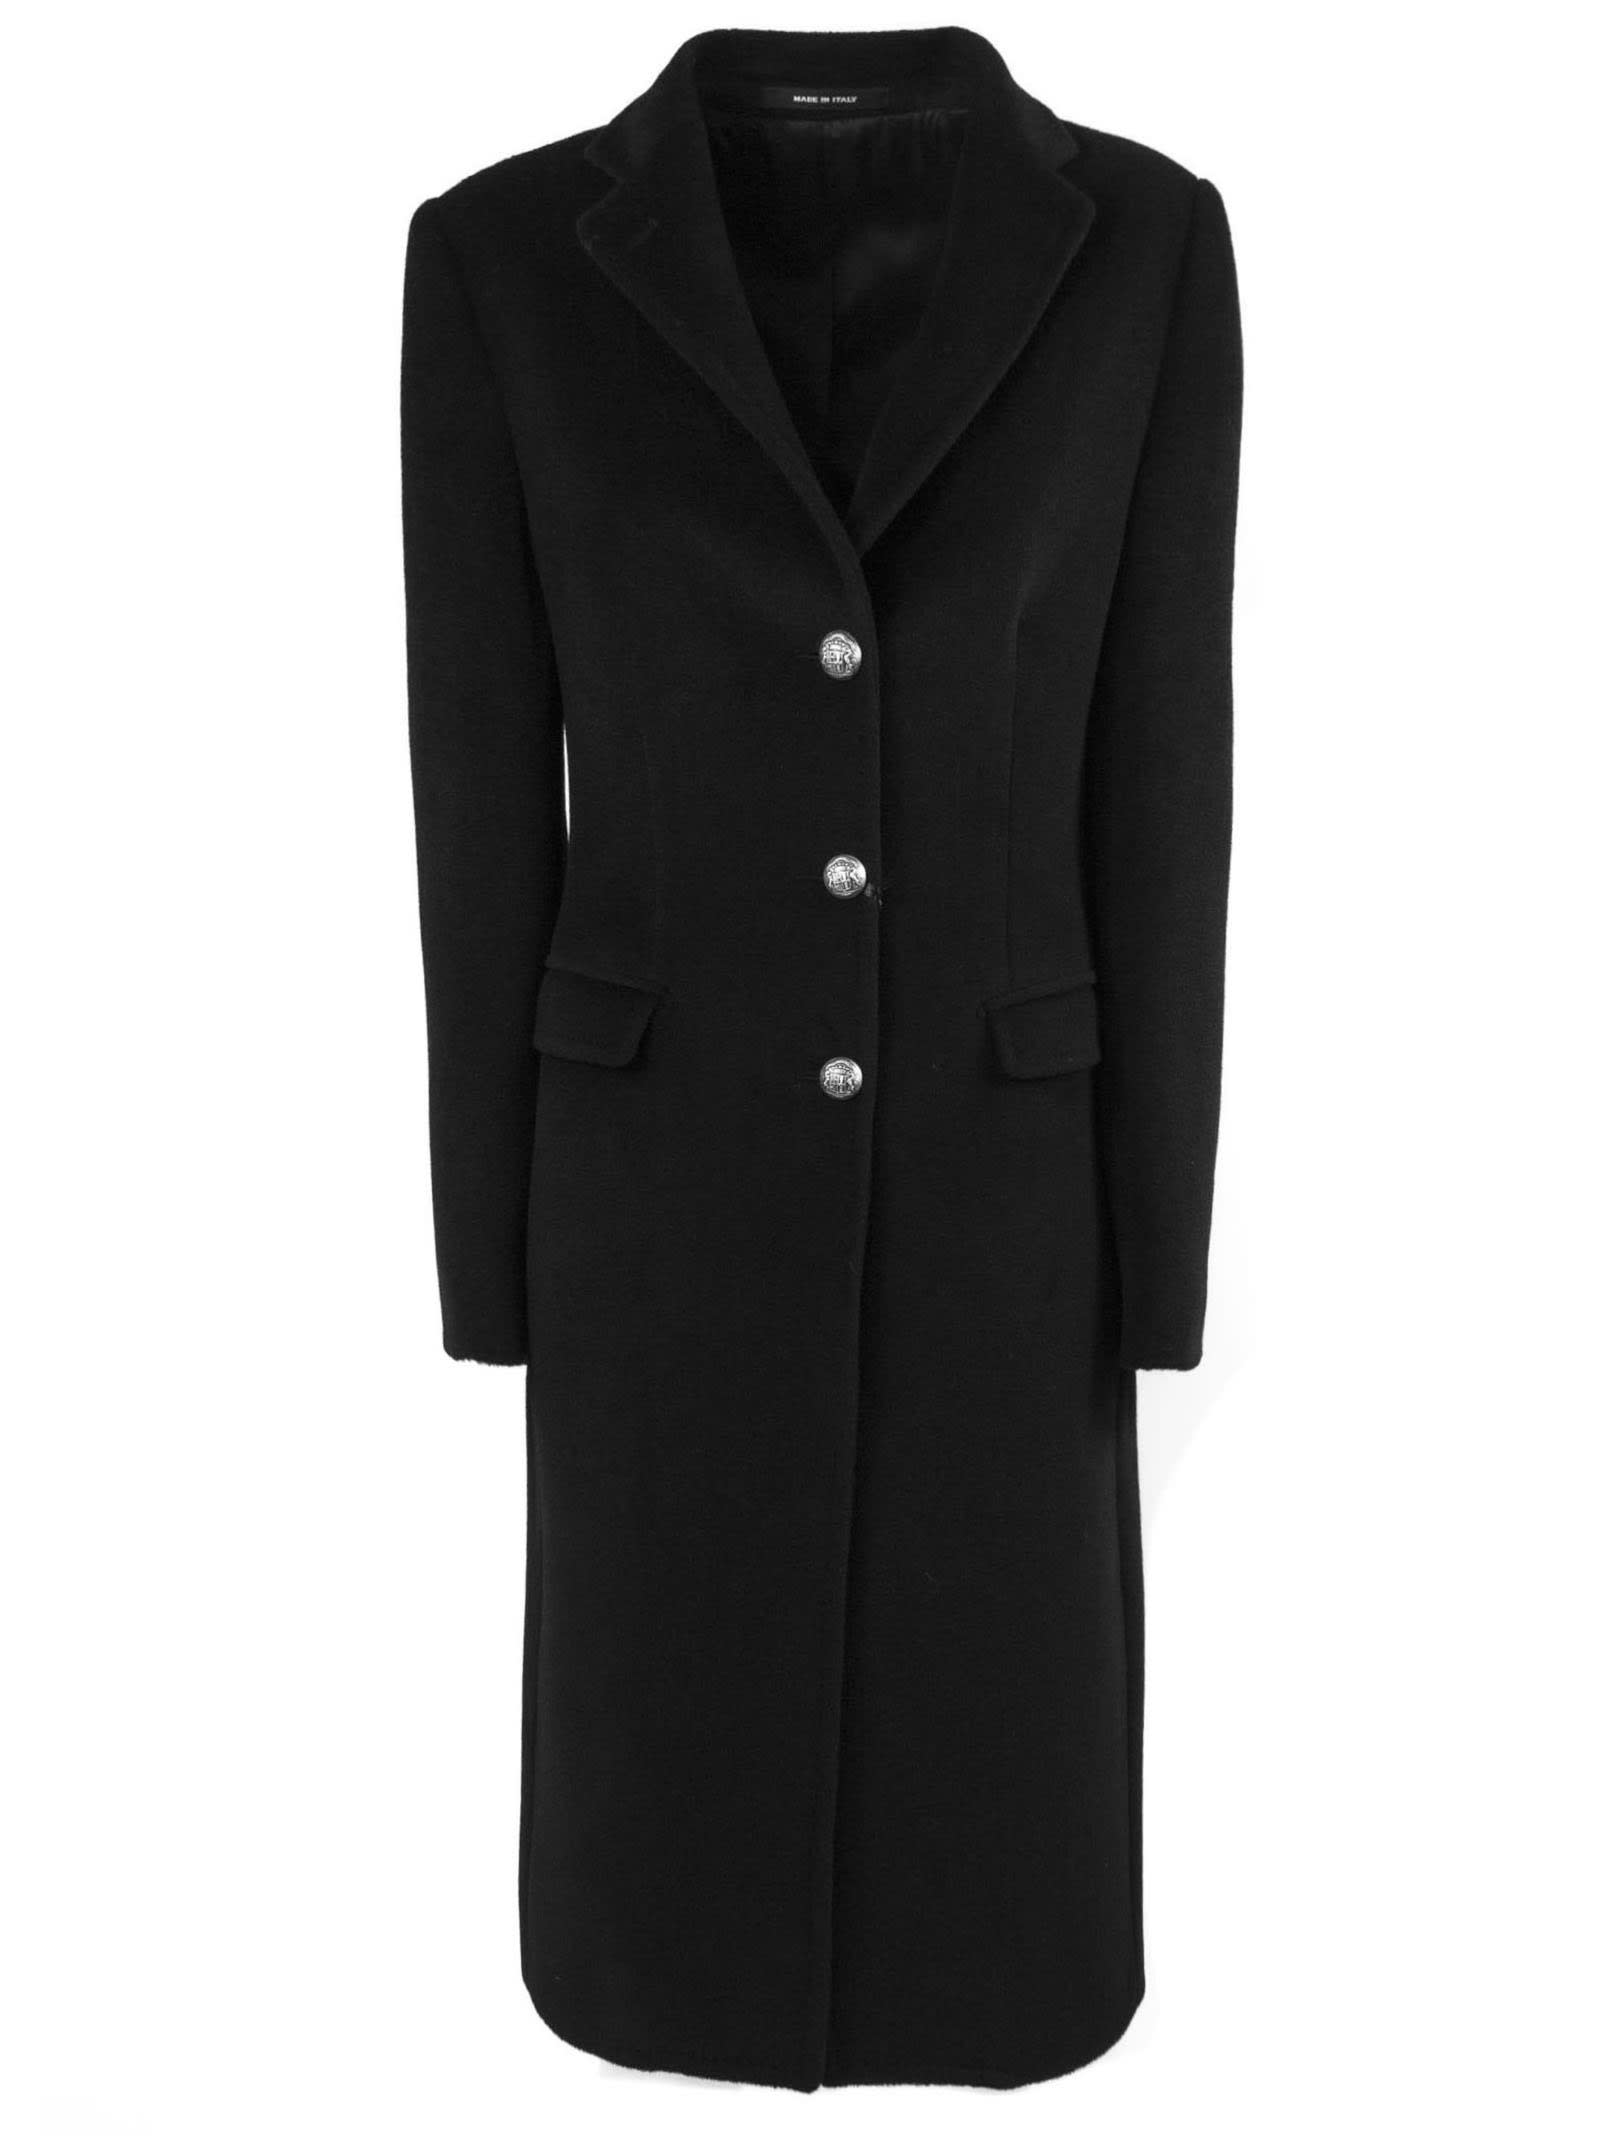 Tagliatore Black Wool Blend Coat